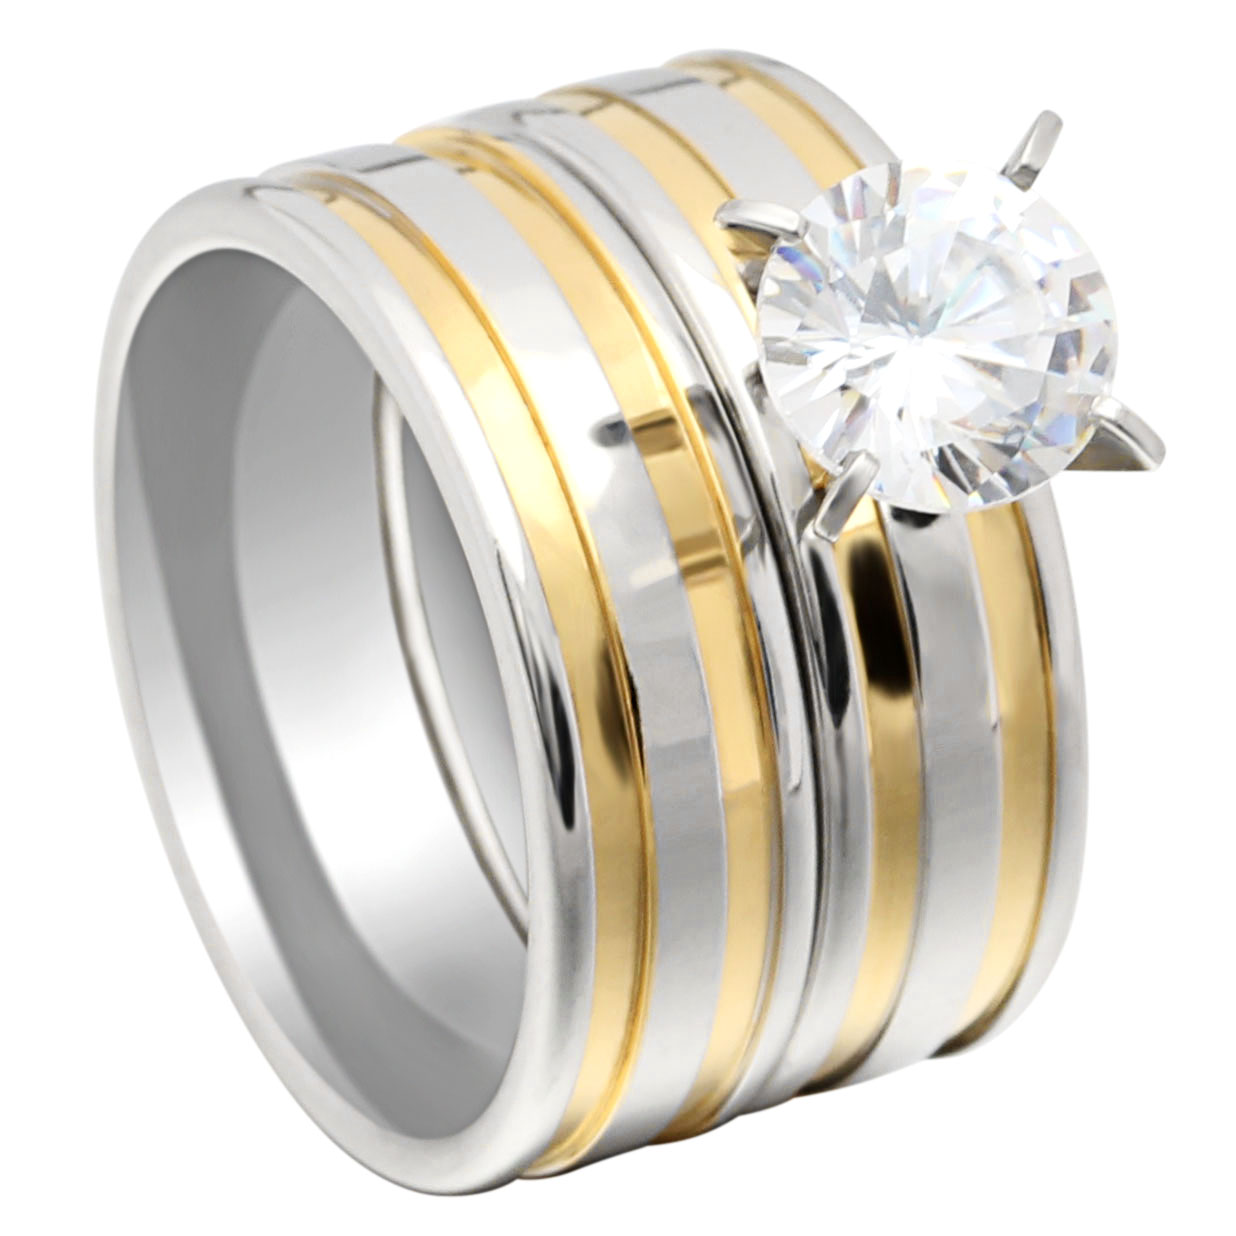 Hainon Fashion Engagement Wedding Ring Sets Stainless Steel Ring Sets for Women Rhinestone Cz Silver&Gold Color Jewelry